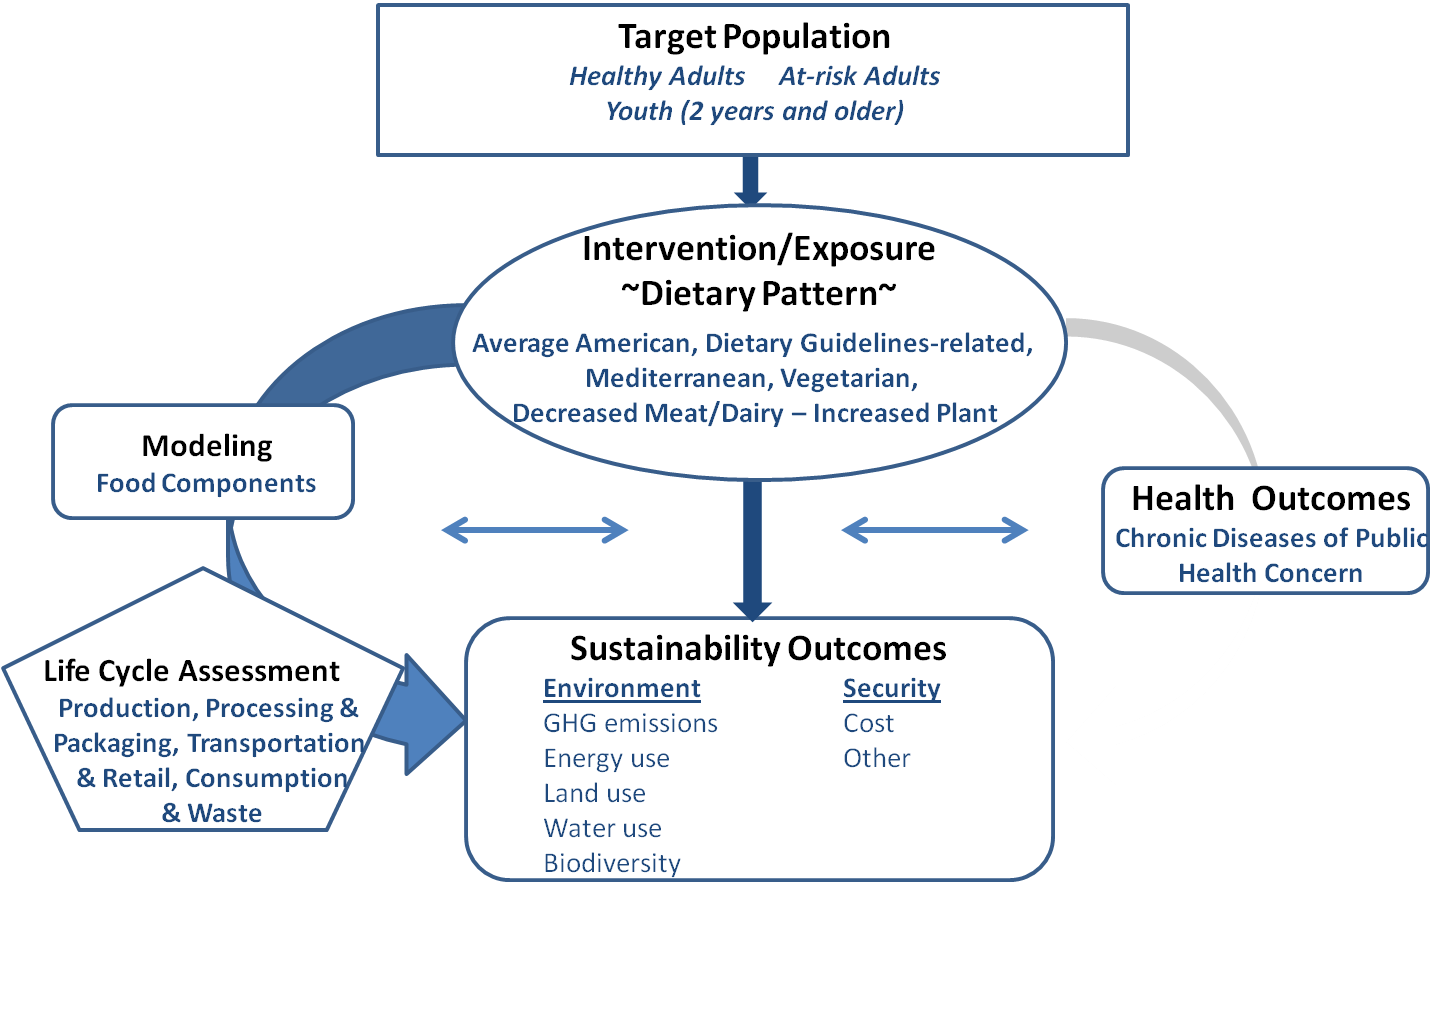 Framework showing relationships between the population, dietary pattern exposure, health outcomes, and sustainability outcomes for dietary patterns and sustainability.